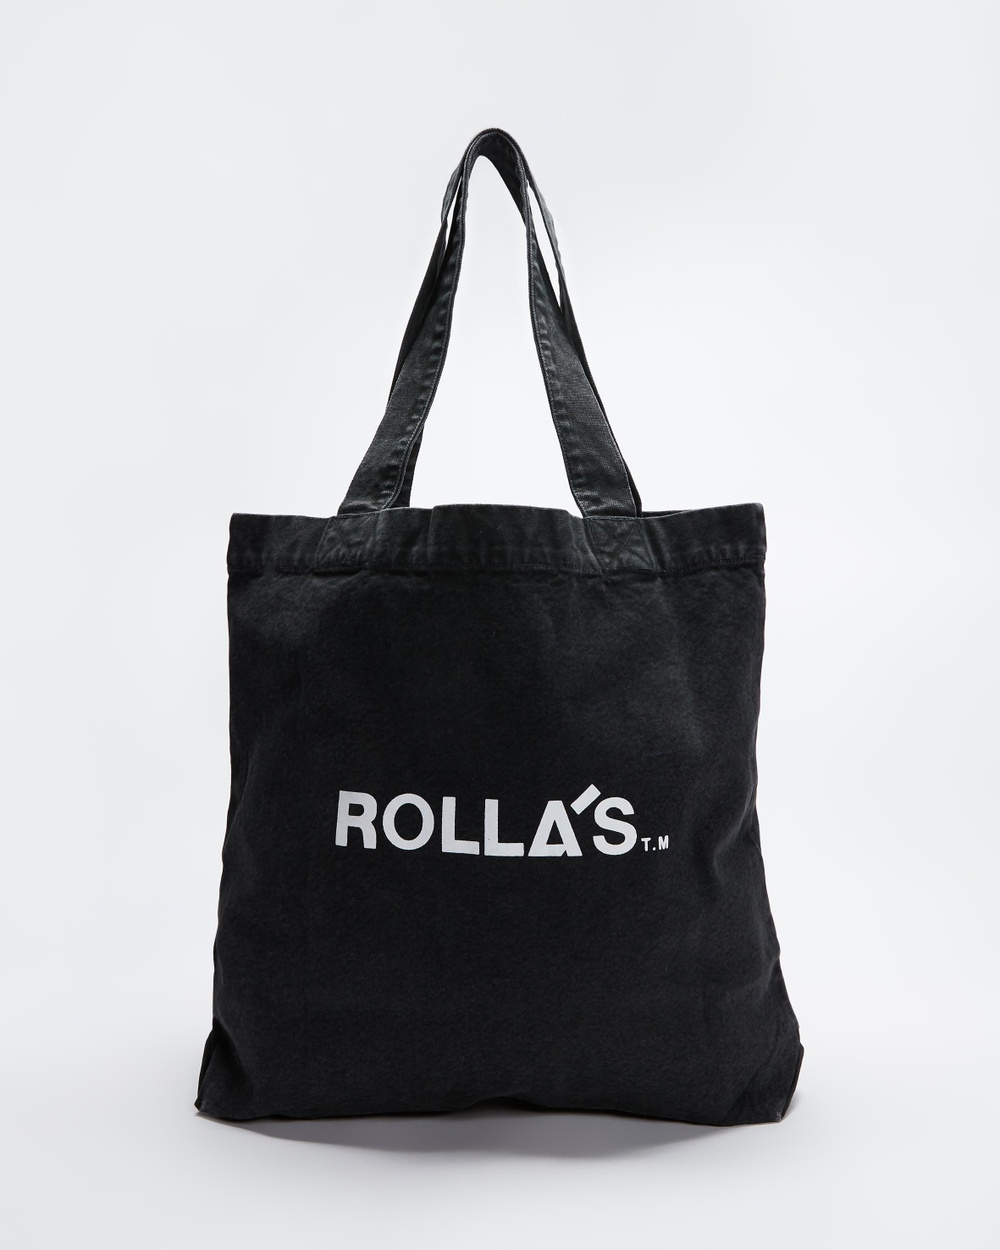 Rollas Rolling Stone 1981 Tote Bags Washed Black Australia